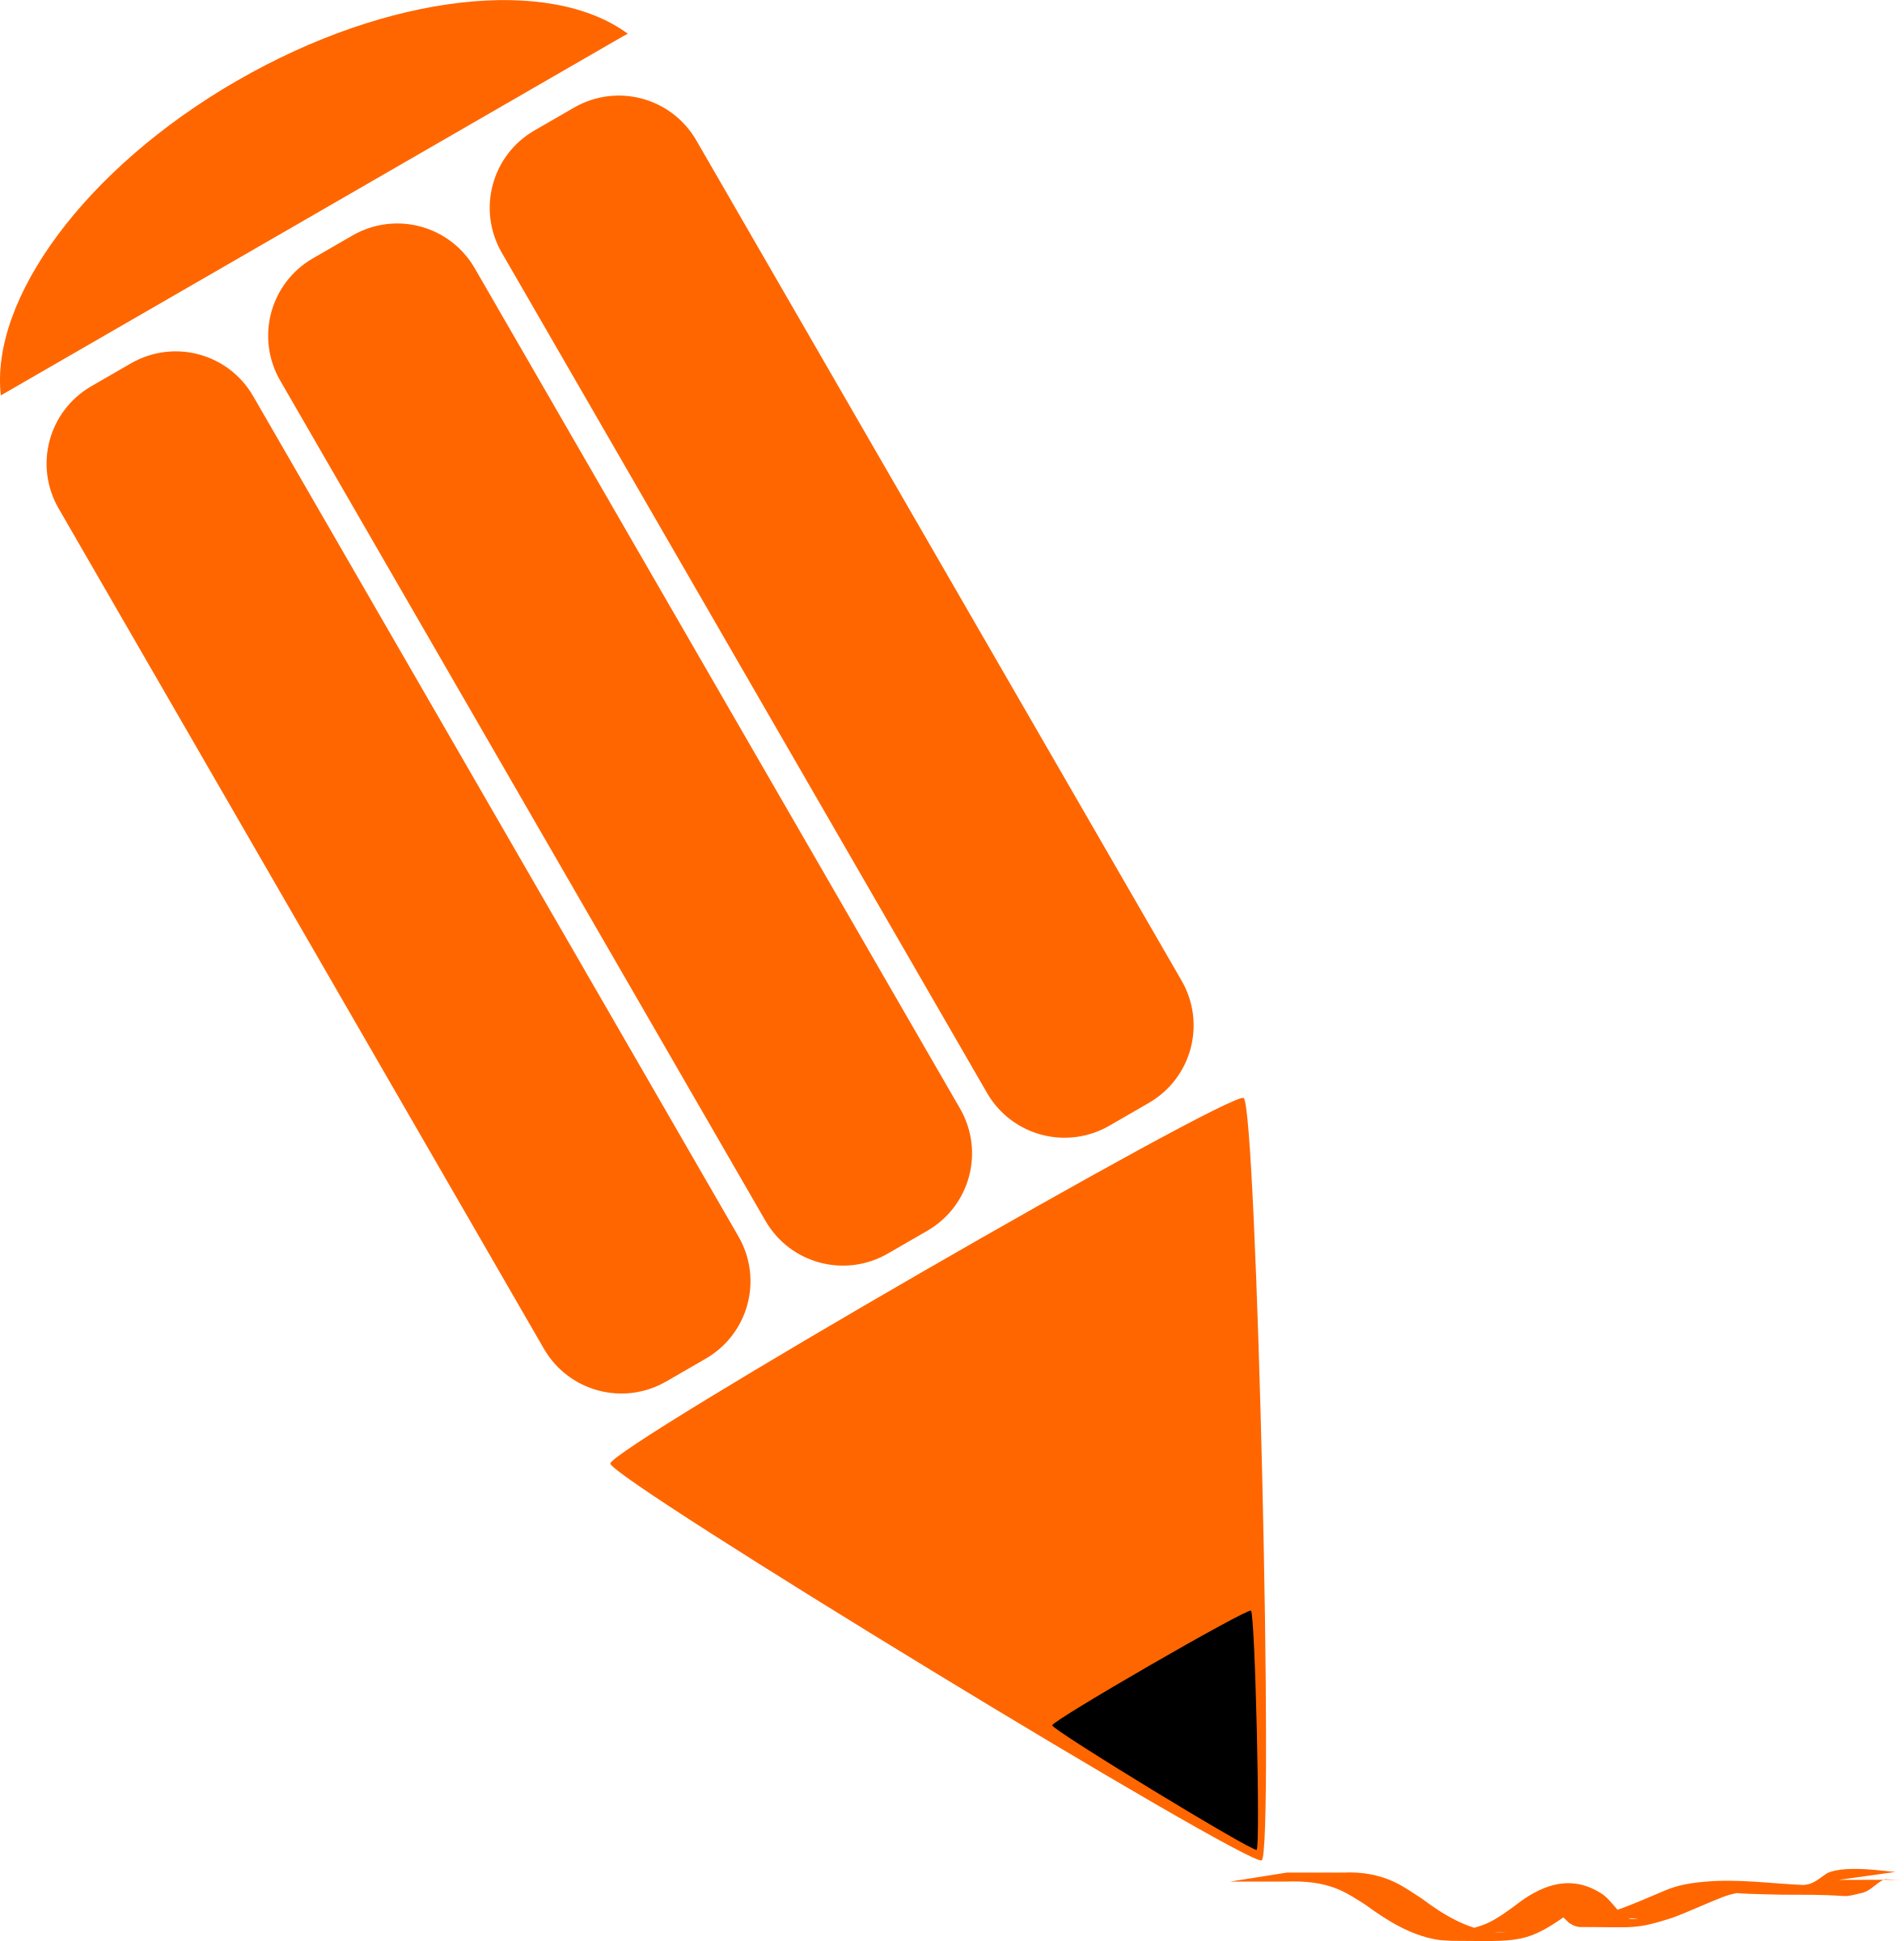 Pencil Stylized Orange